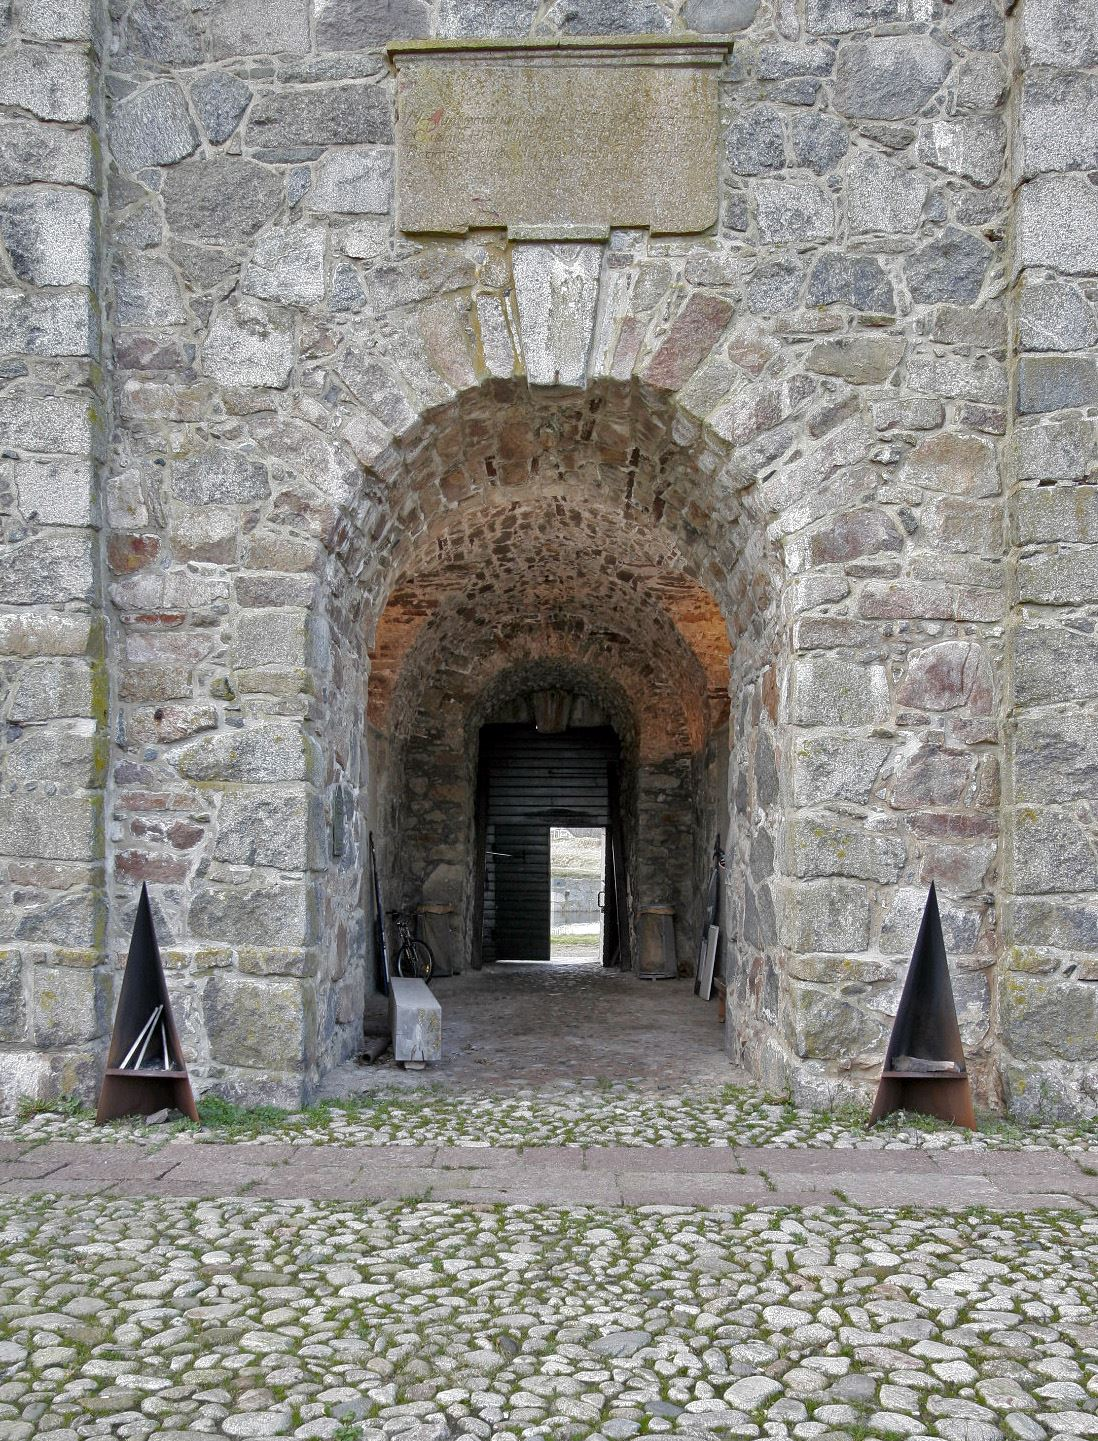 Archipelago Festival - FREE guided tour to Drottningskärs Citadel